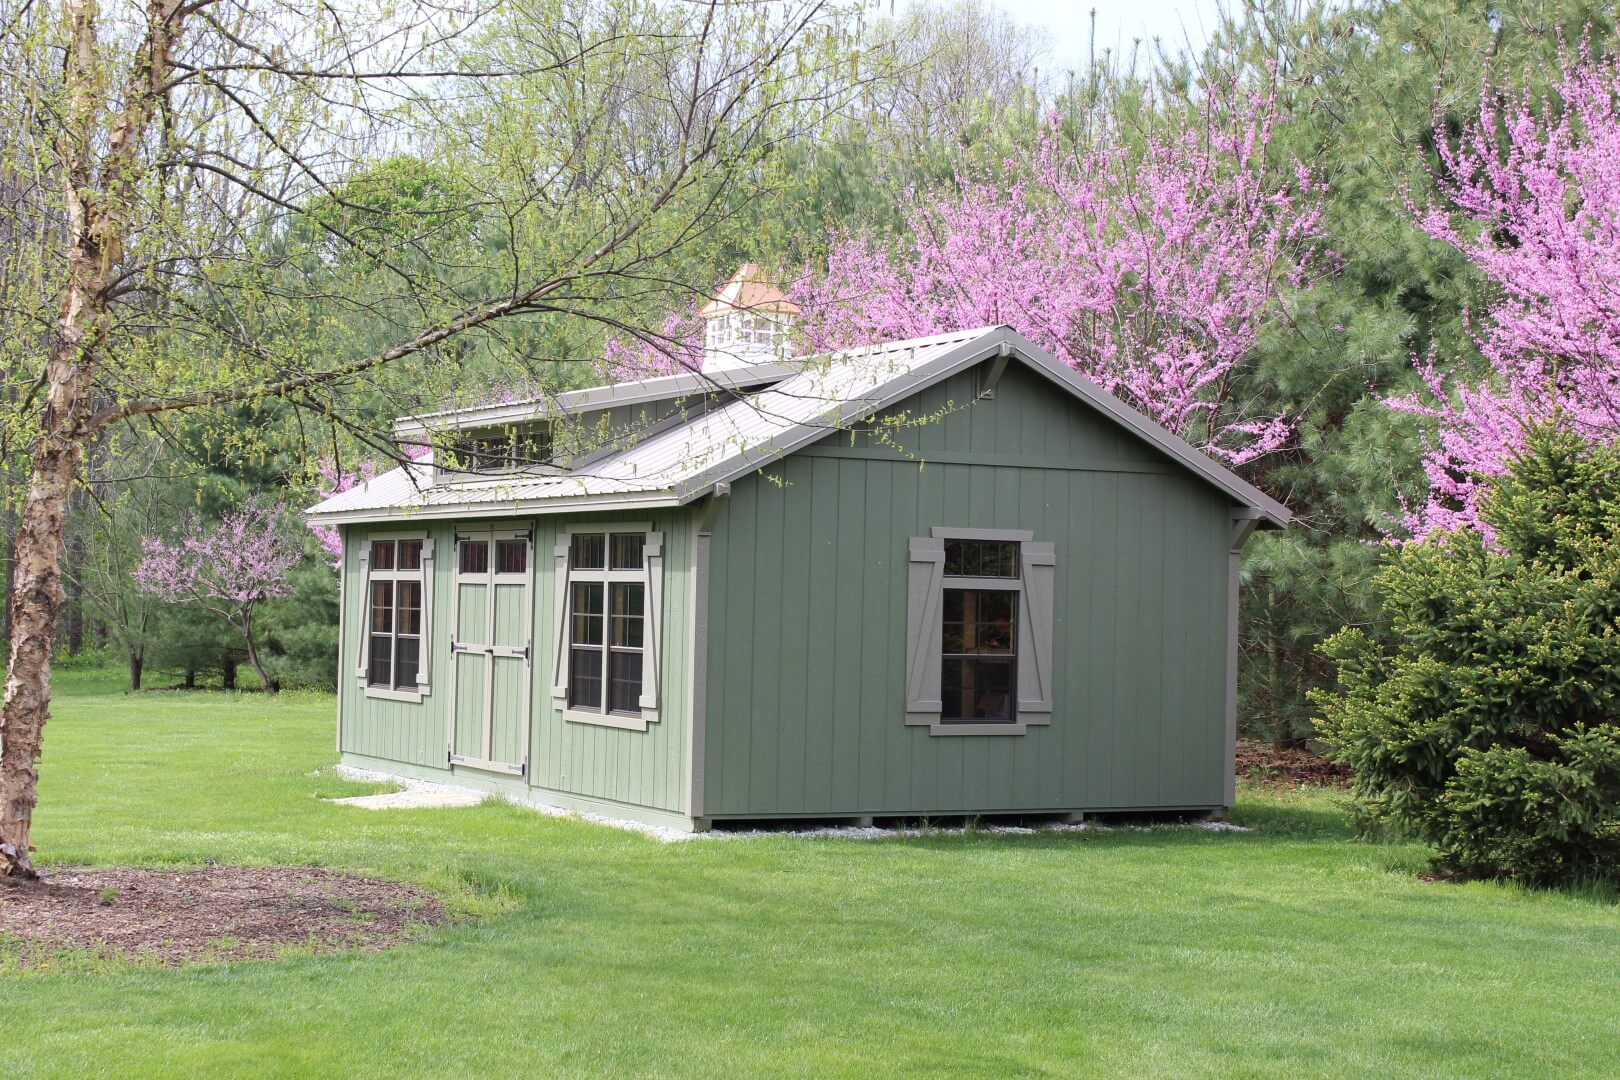 Garden Sheds Indiana garden barns & sheds · hostetler's furniture